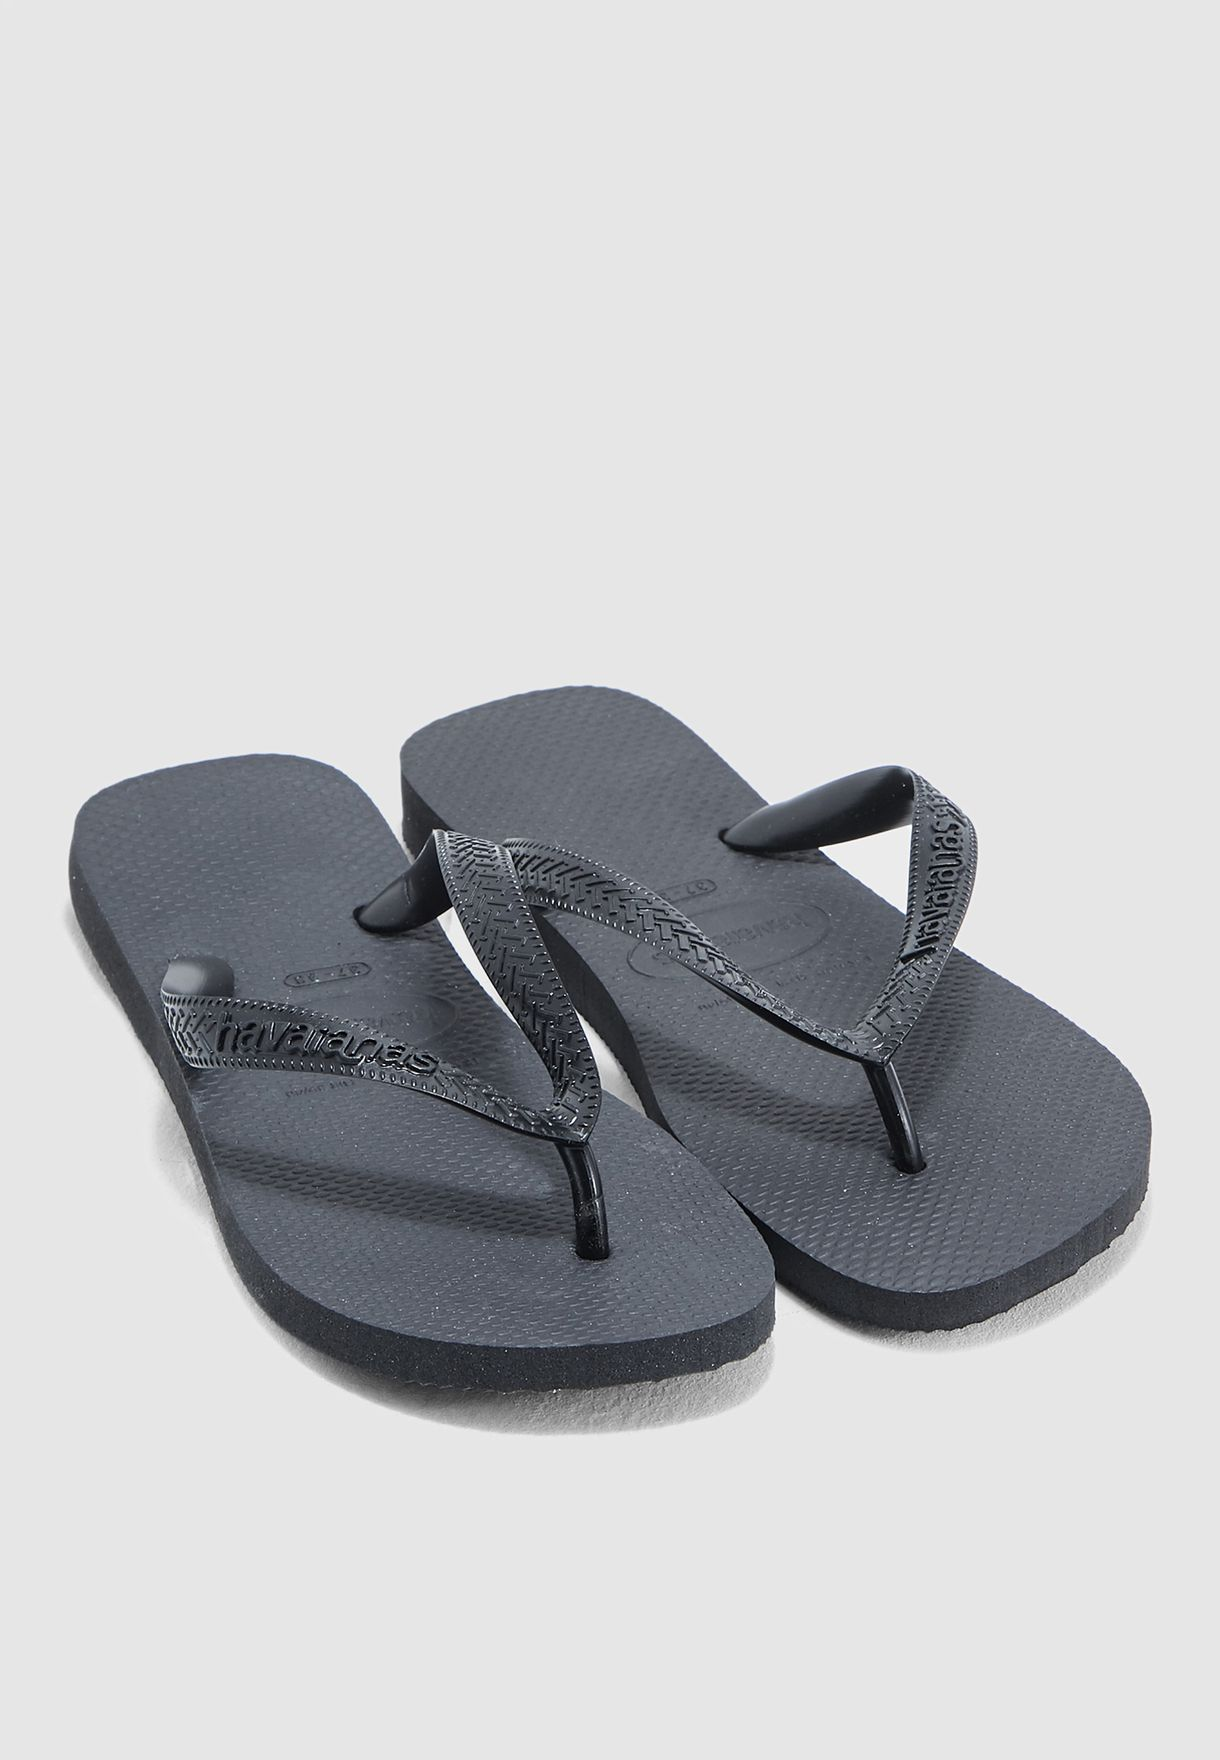 59b257ed3c0b Shop Havaianas black Top Fashion Flip Flop 4000029 for Women in ...